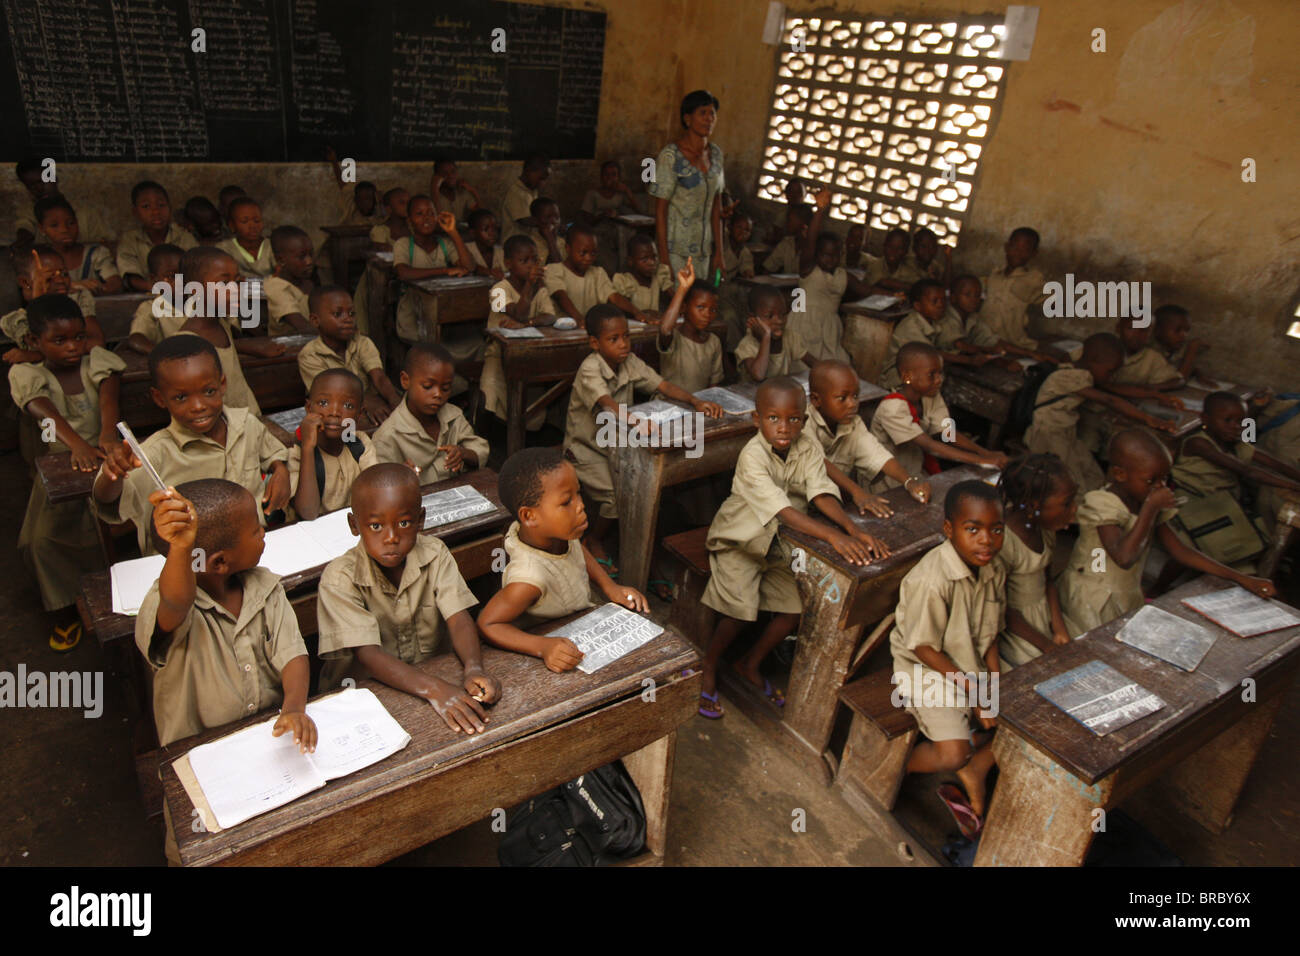 Primary school, Lome, Togo, West Africa - Stock Image